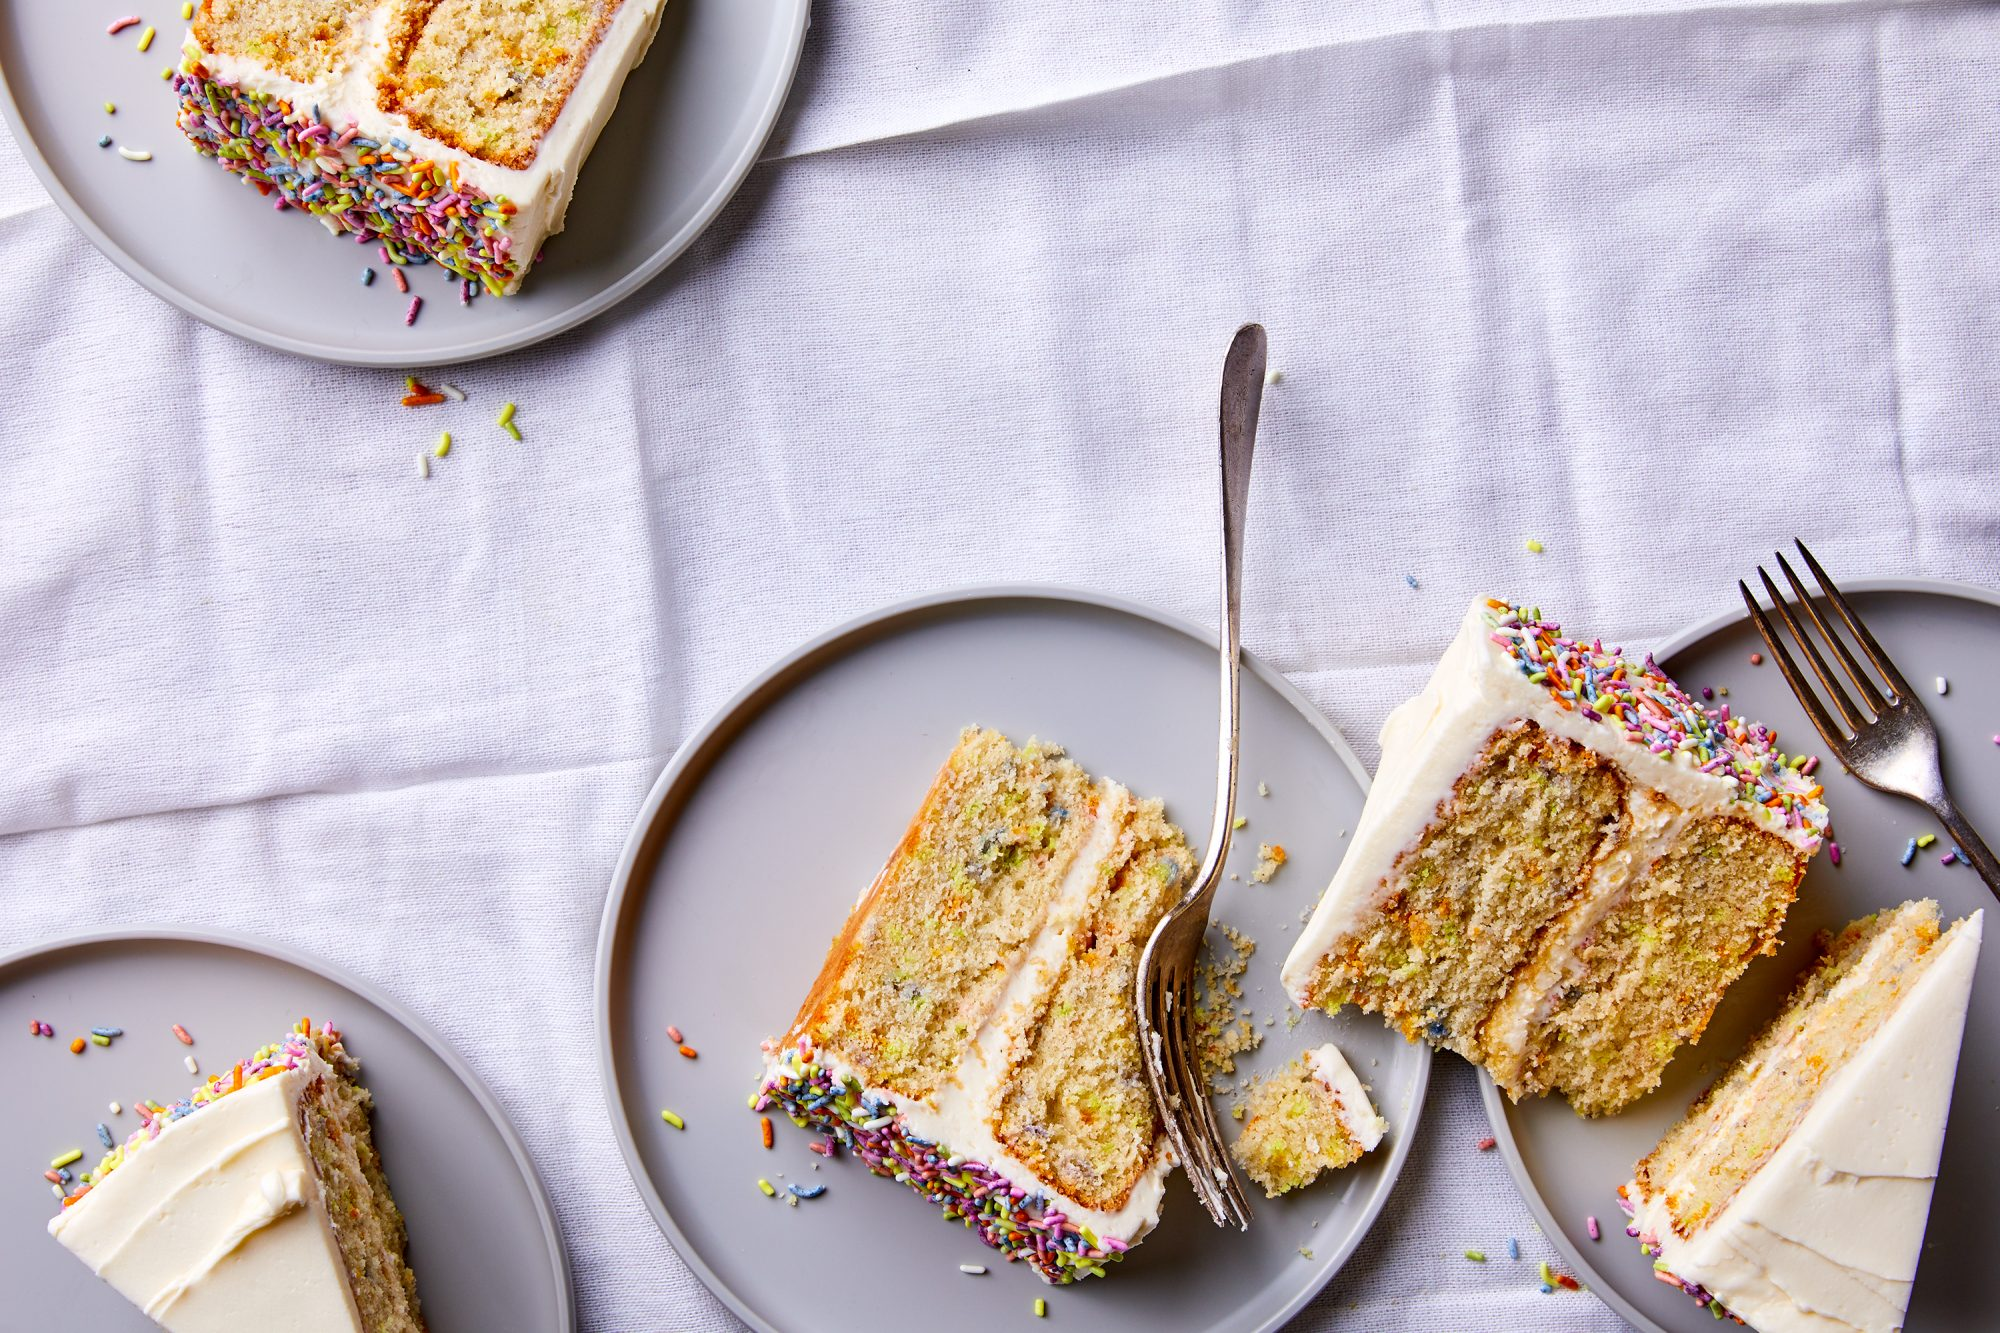 slices of birthday cake on plates on purple tablecloth